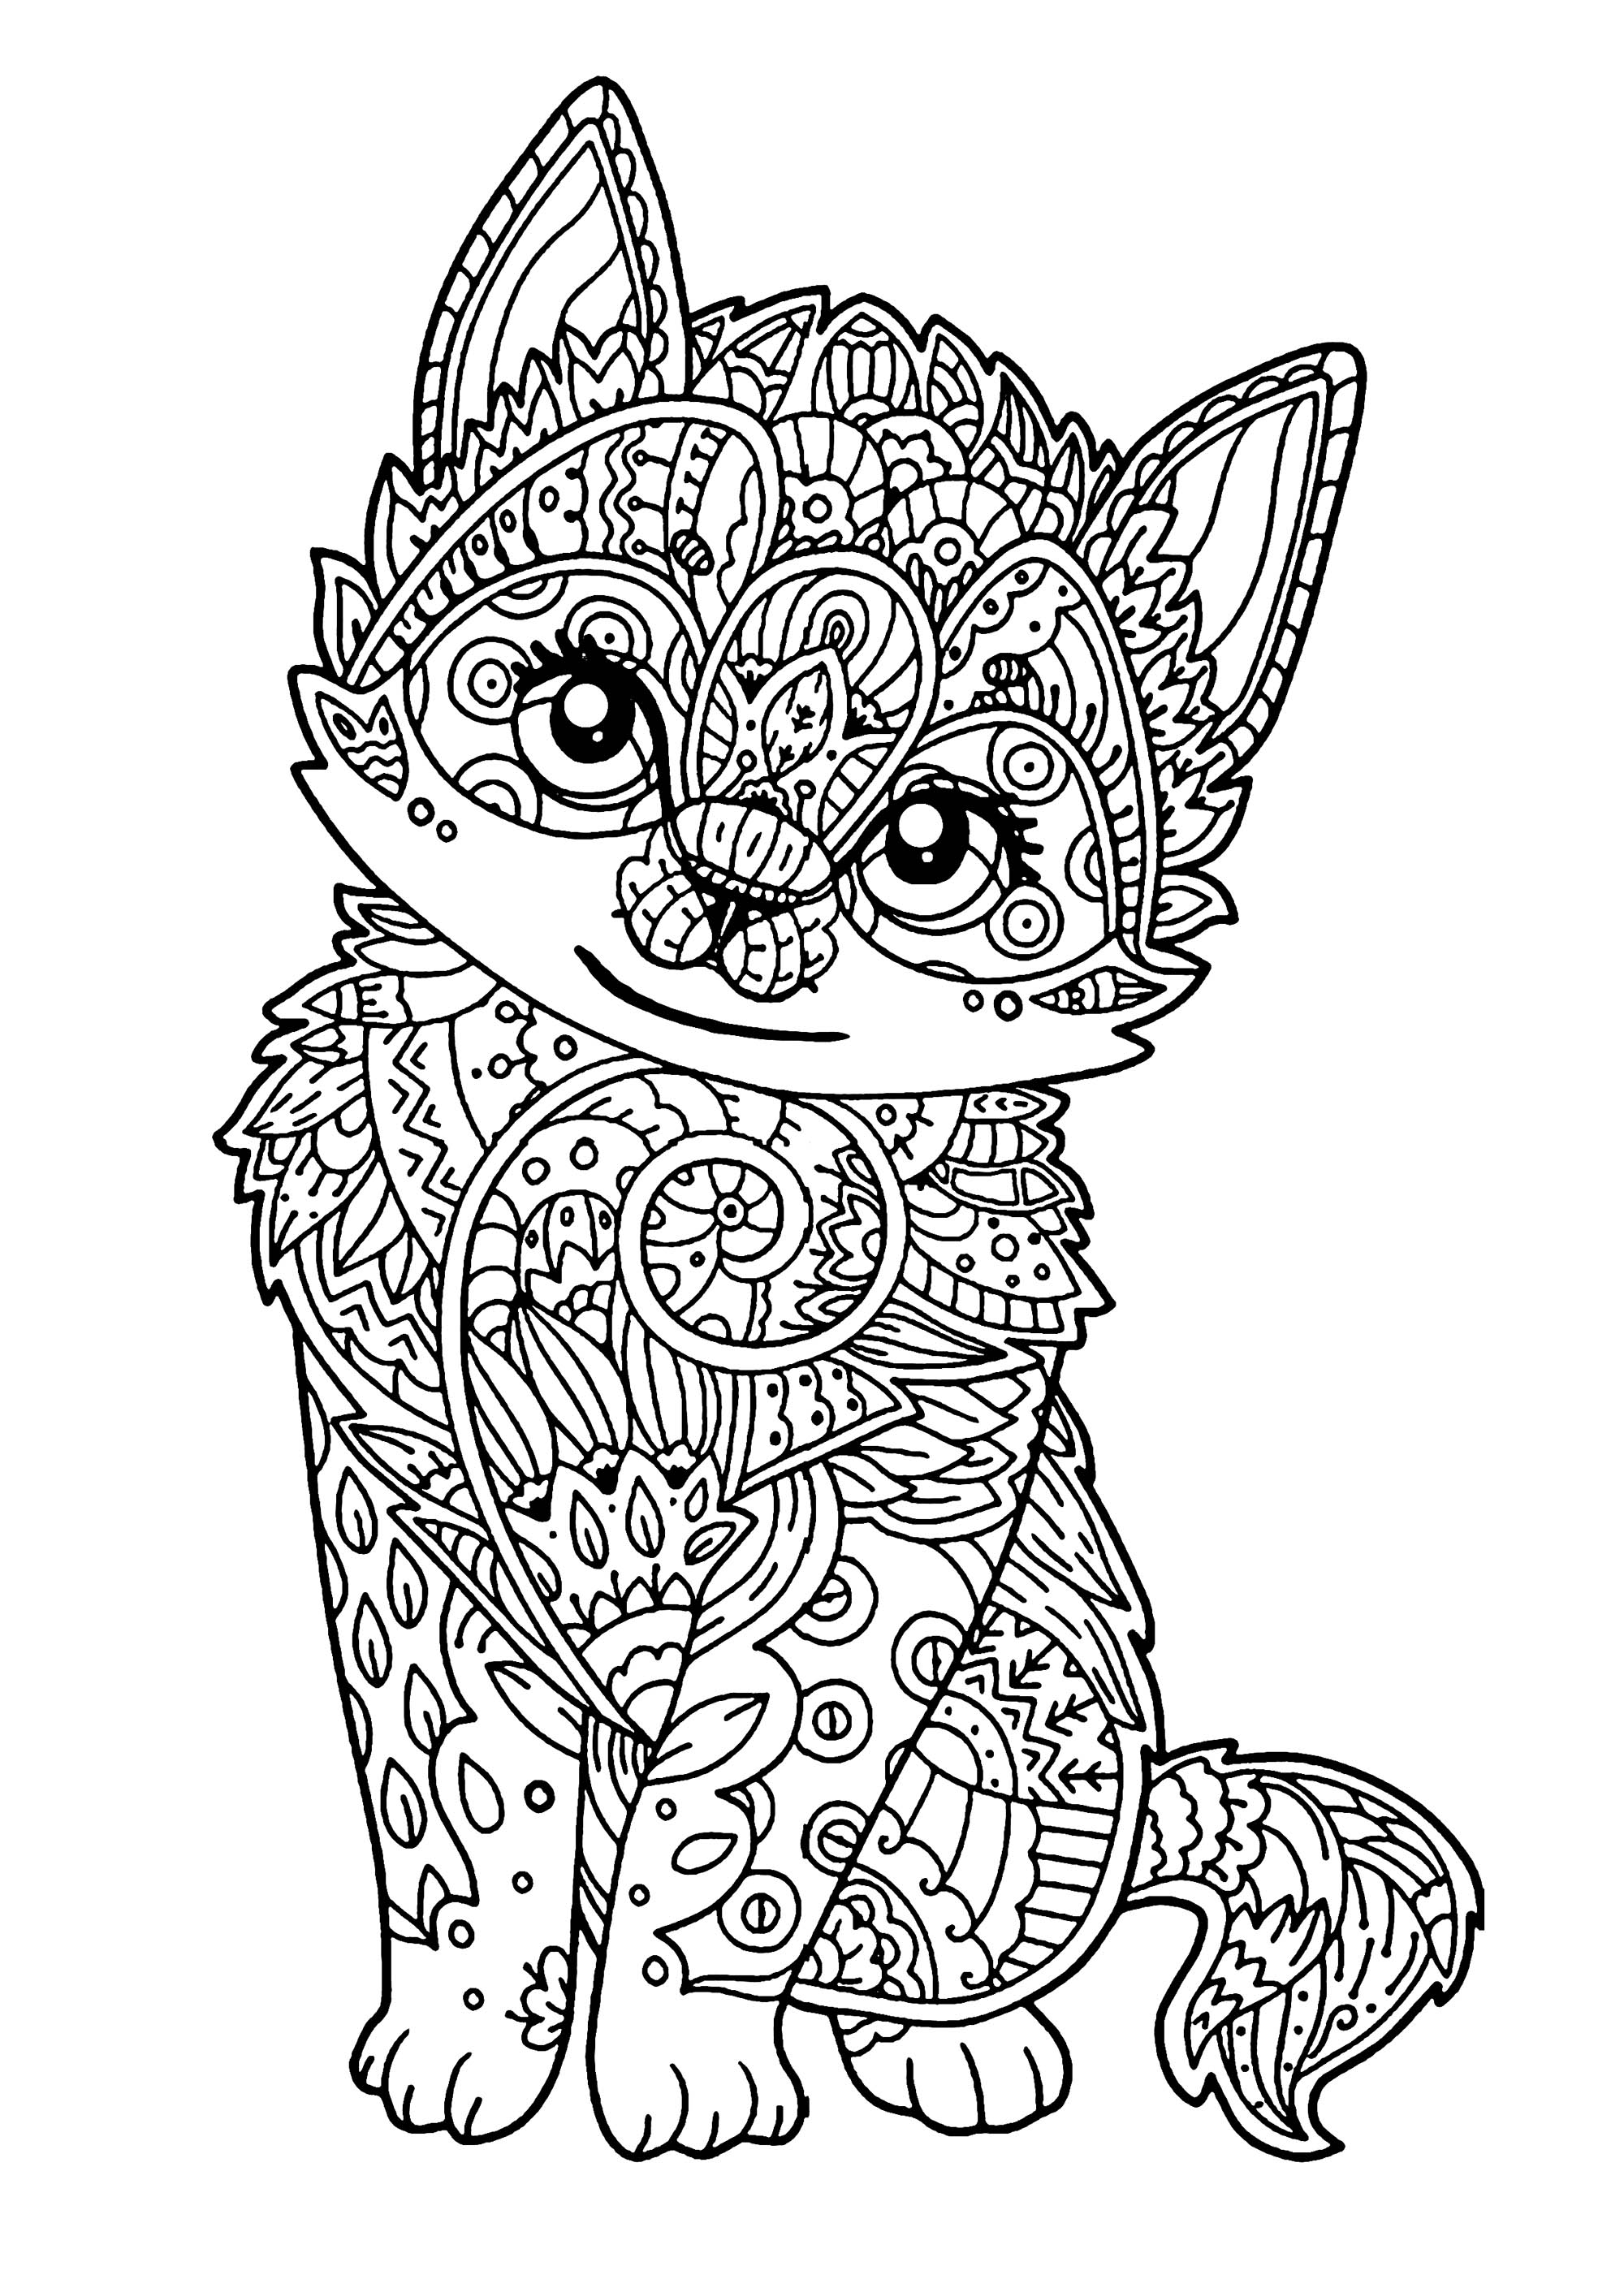 cat pictures to color and print cute kitten coloring page free printable coloring pages cat and pictures to color print